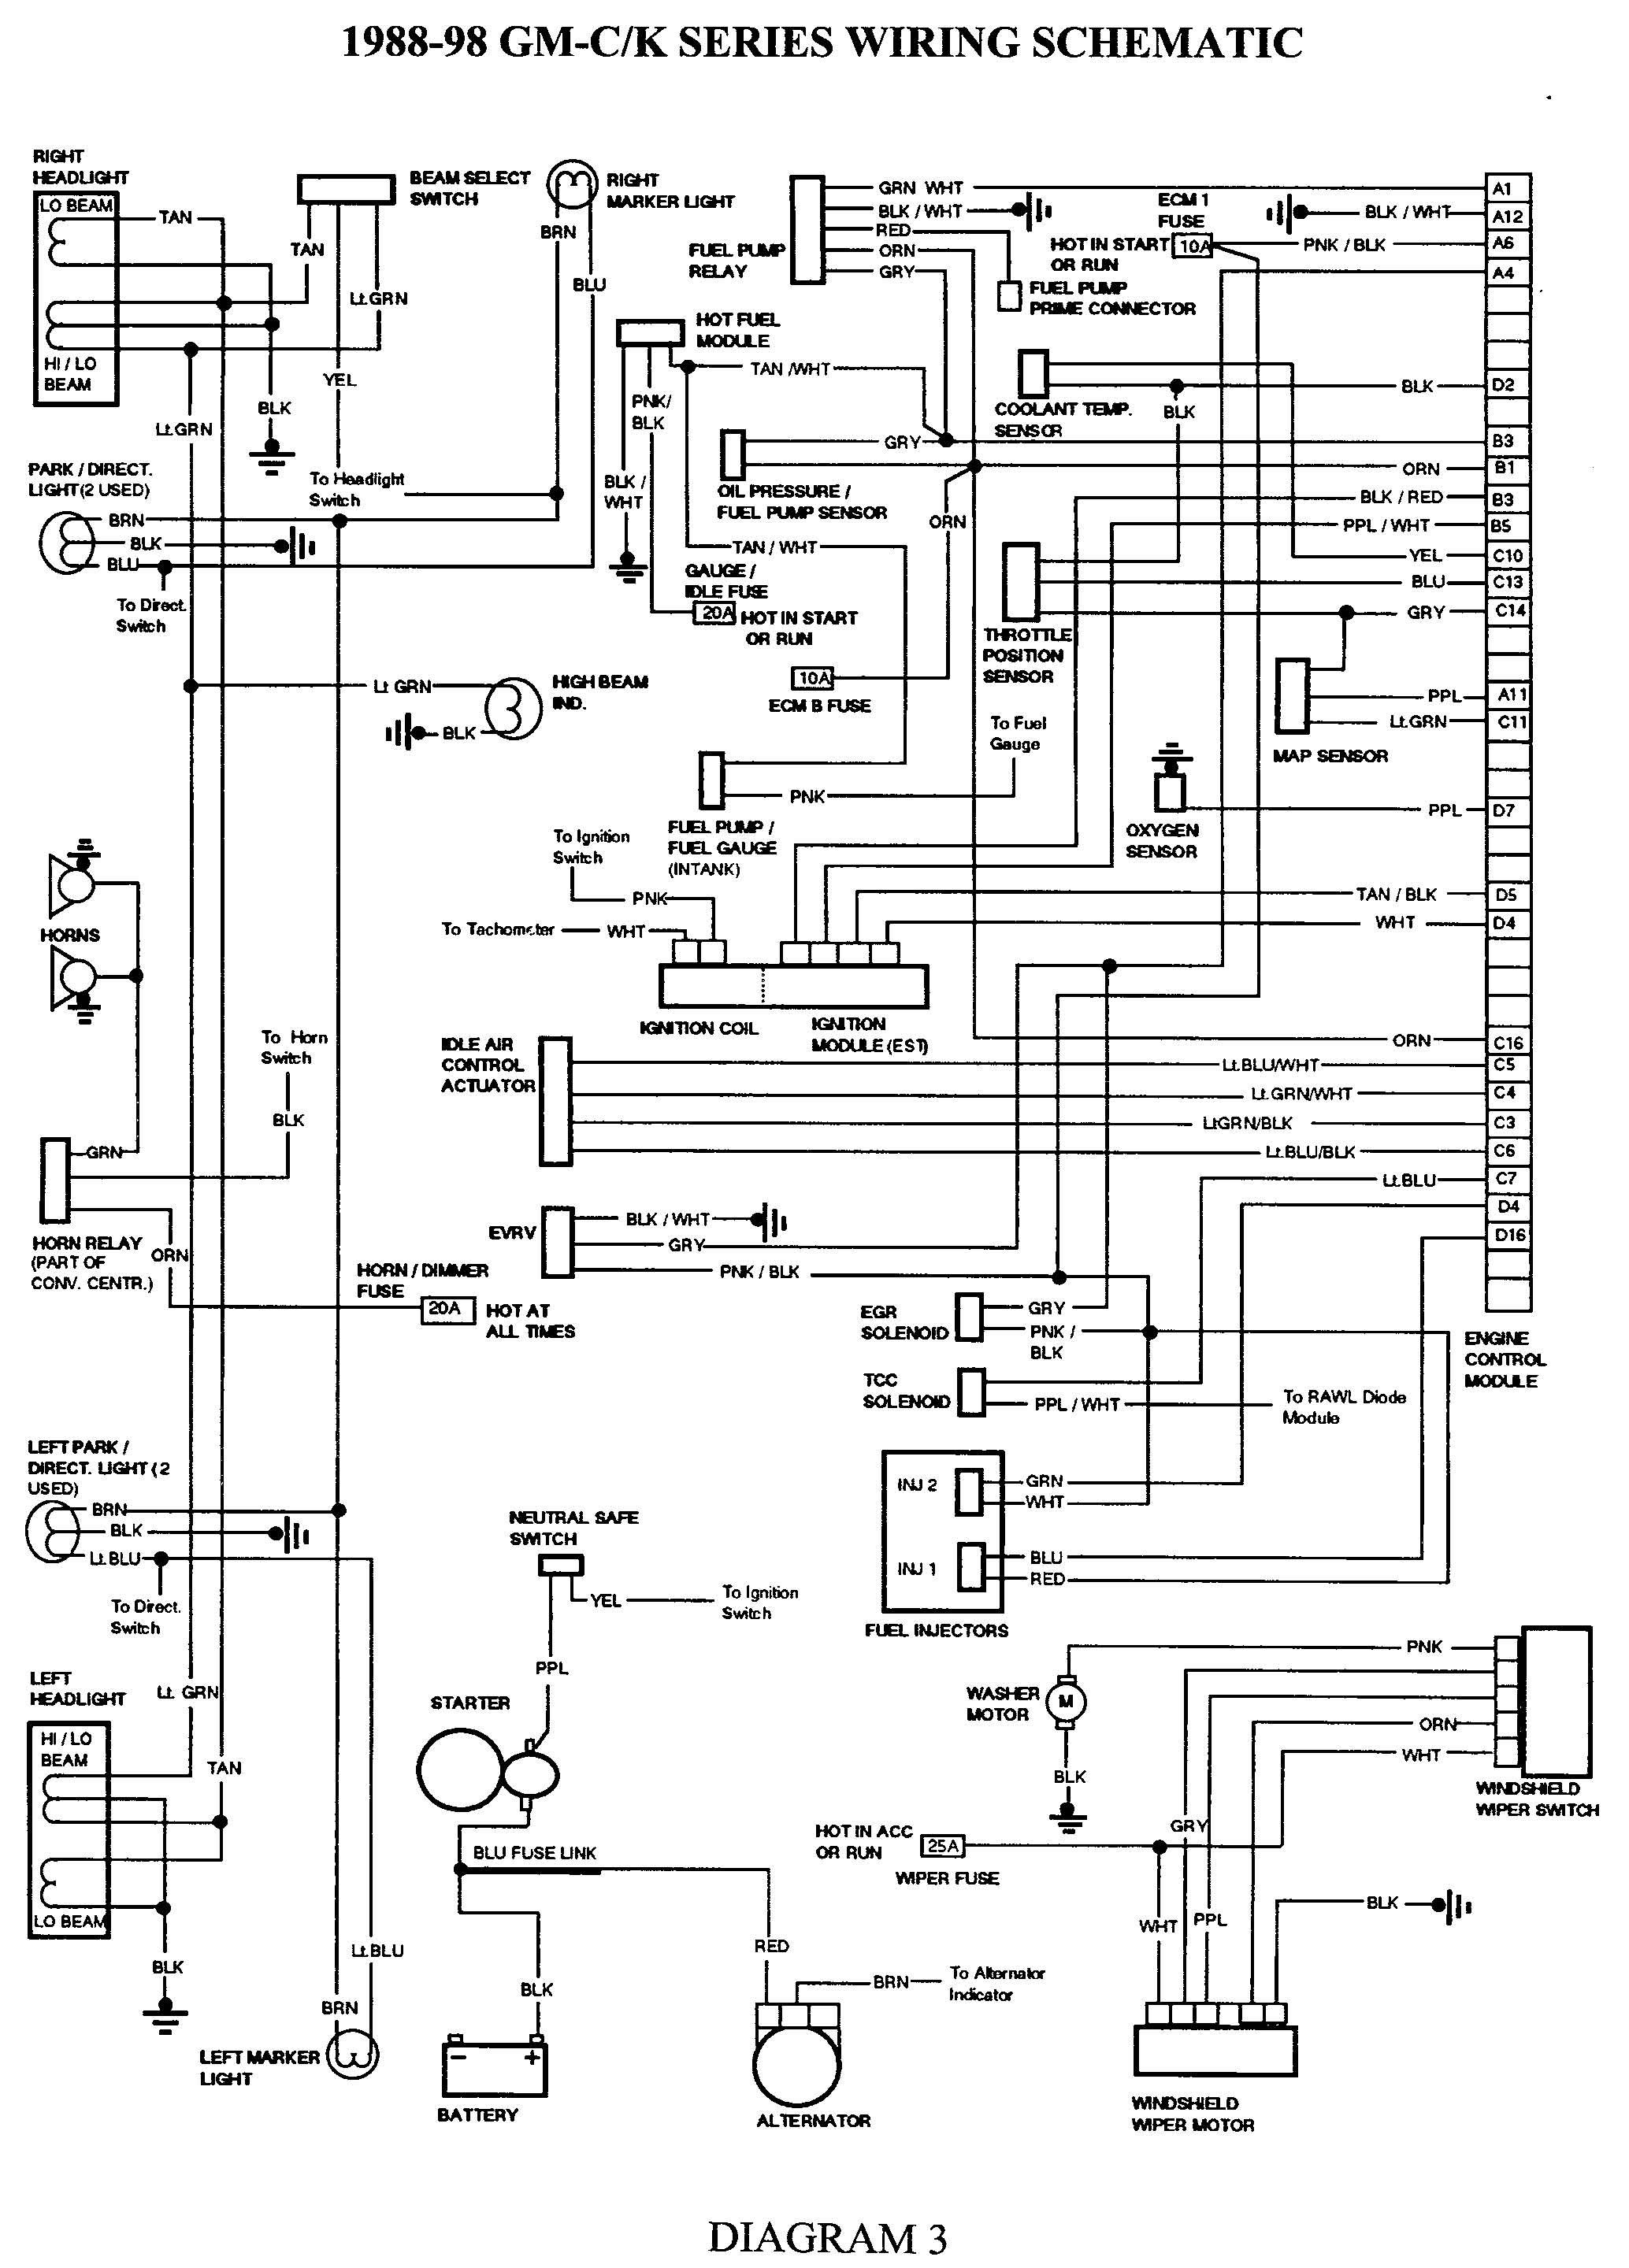 Gmc Truck Wiring Diagrams On Gm Wiring Harness Diagram 88 98 | Kc - Wiring Diagram For 1997 Chevy Silverado